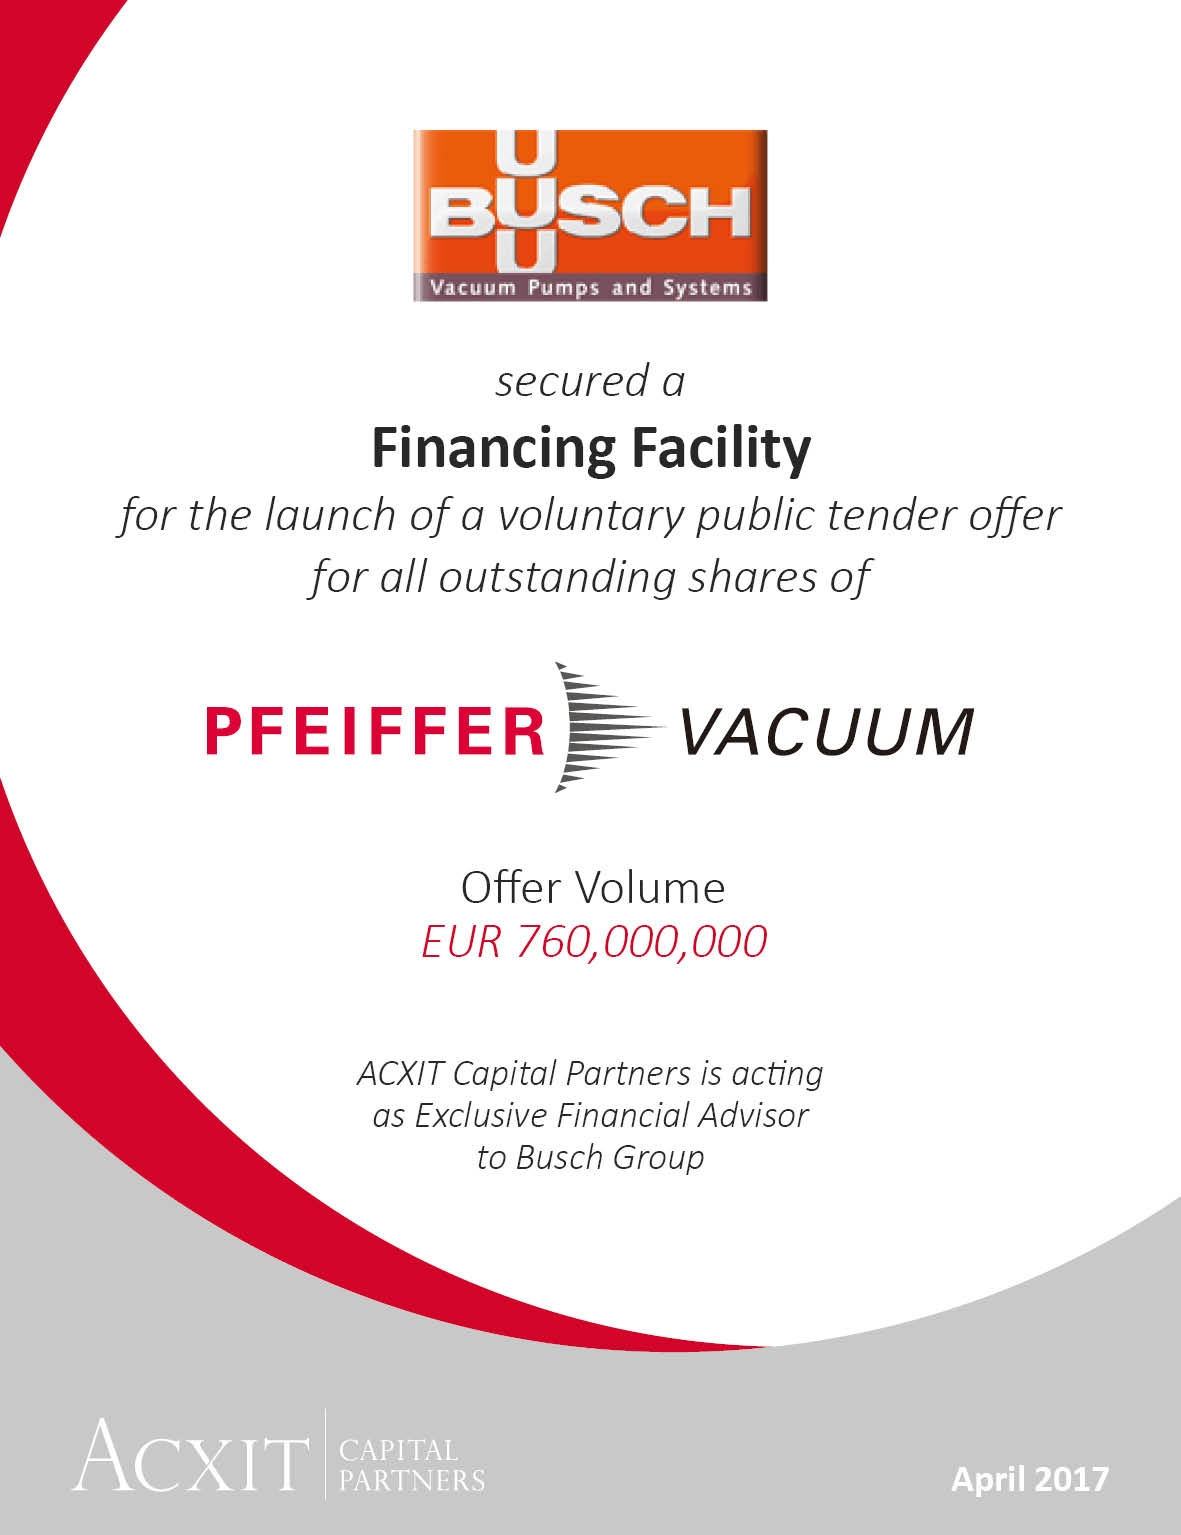 Busch group receives Financing Facility for the Acquisition of Pfeiffer Vacuum Technology AG